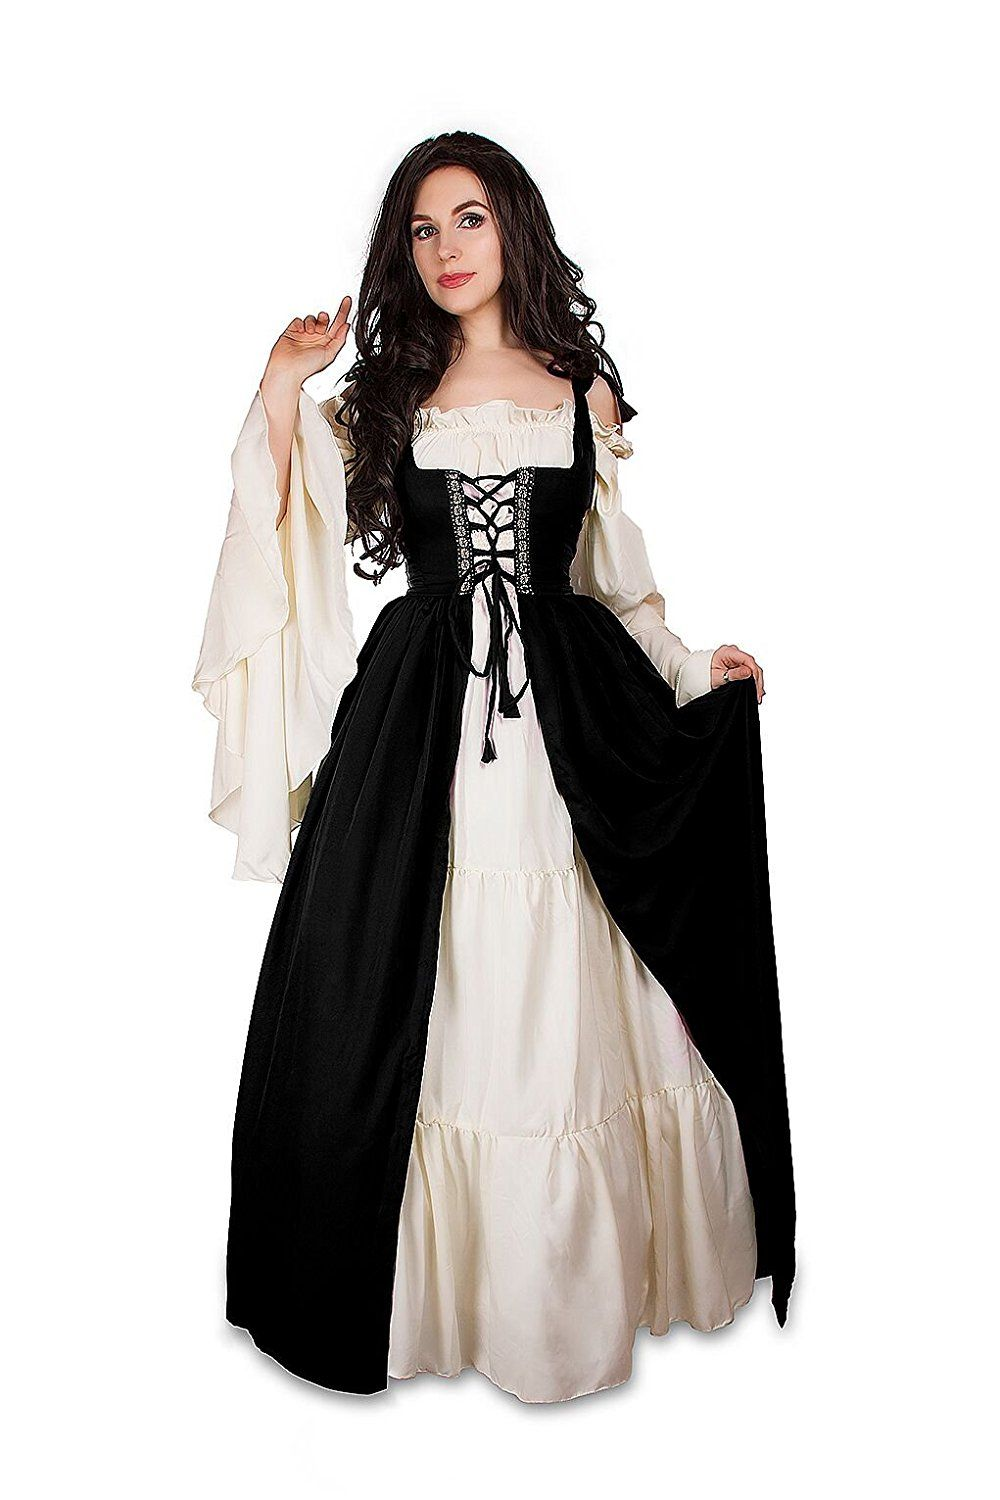 Amazon.com: Renaissance Medieval Irish Costume Over Dress & Cream Chemise Set: Clothing